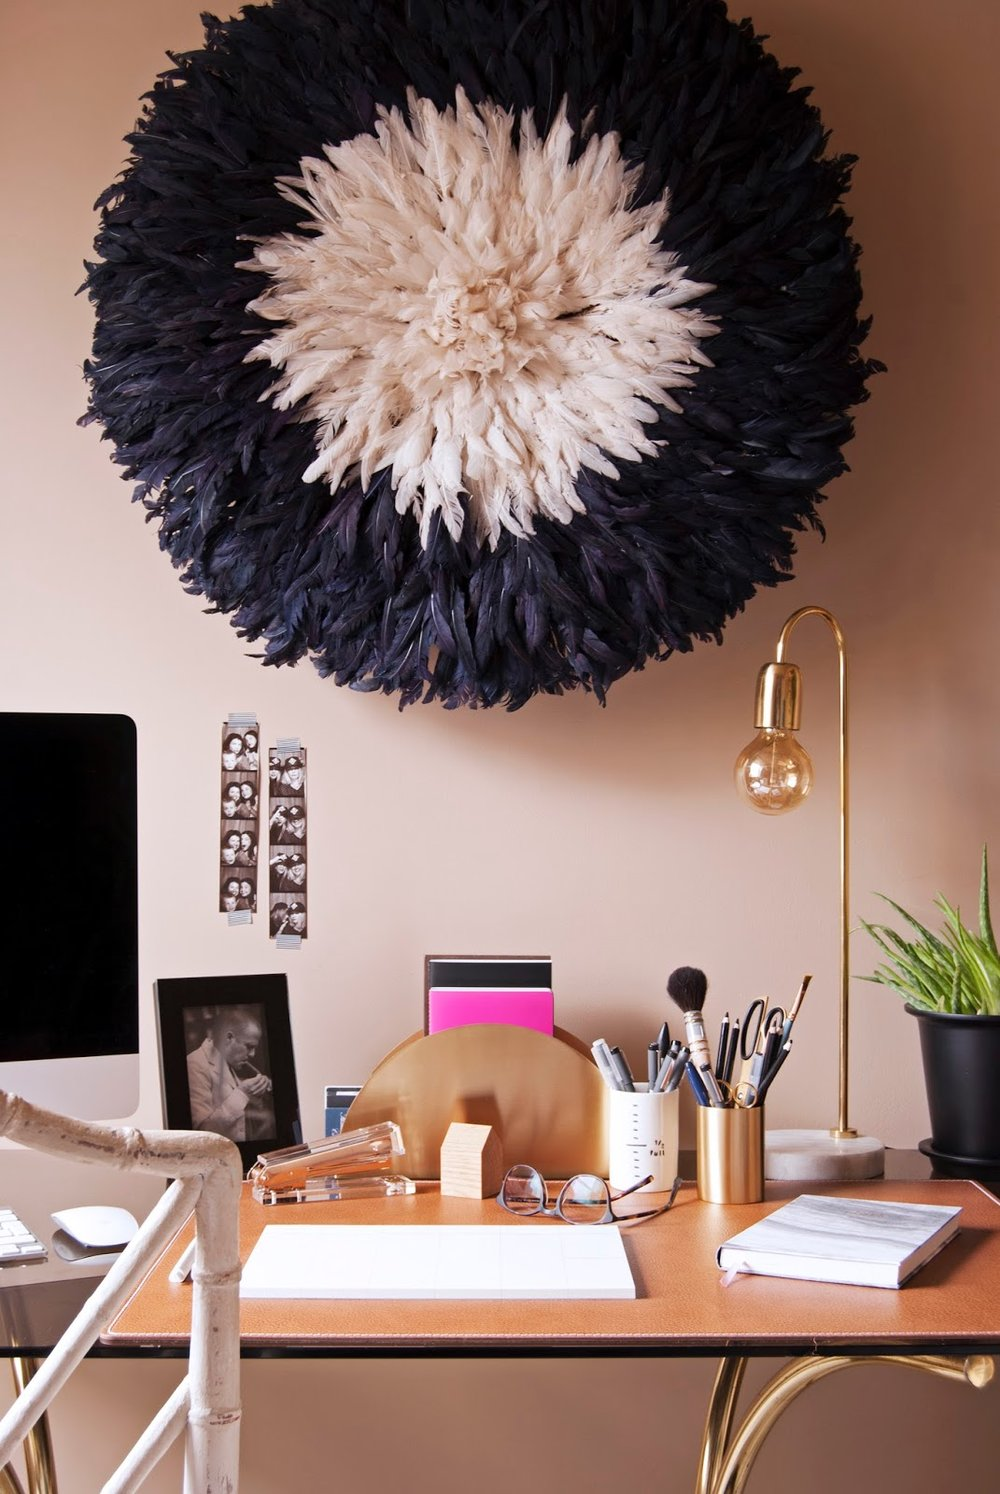 Amara Shoppable Home Inspiration Pages - French For Pineapple Blog - office desk with tan walls, juju hat and gold desk accessories